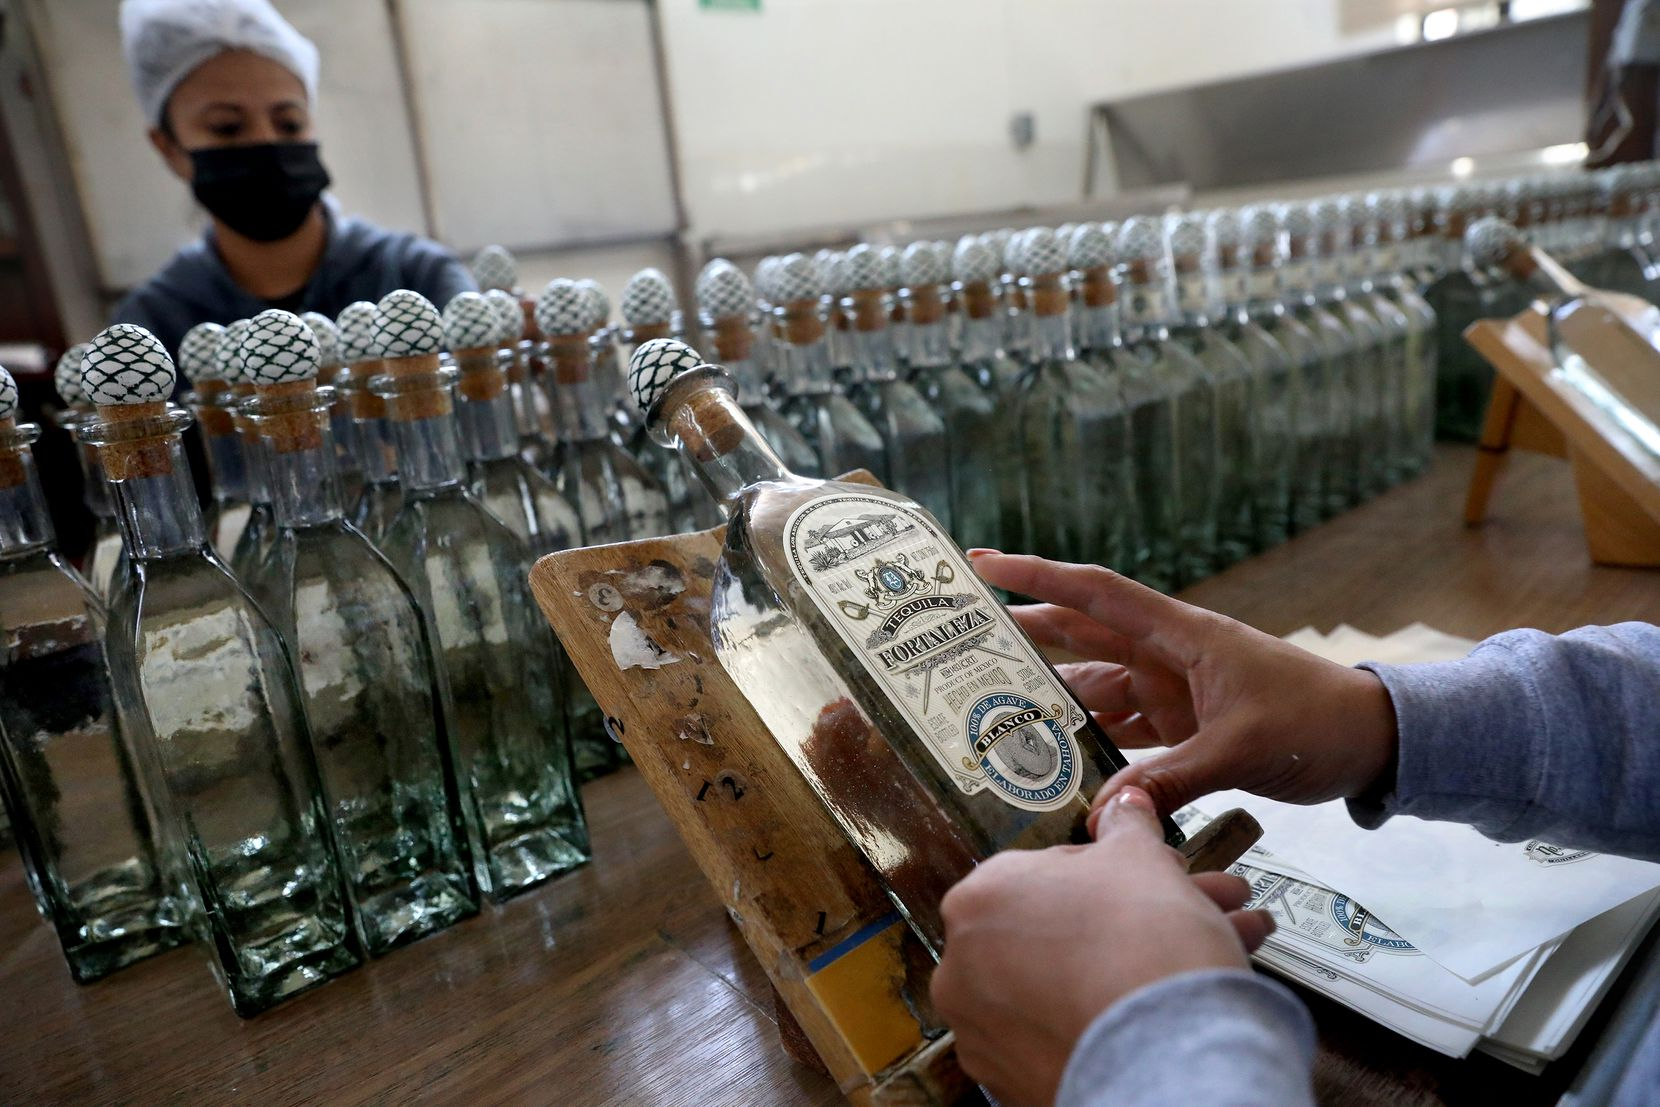 Workers place labels by hand on bottles of tequila at the Fortaleza tequila distillery on July 26 in Tequila, Jalisco.